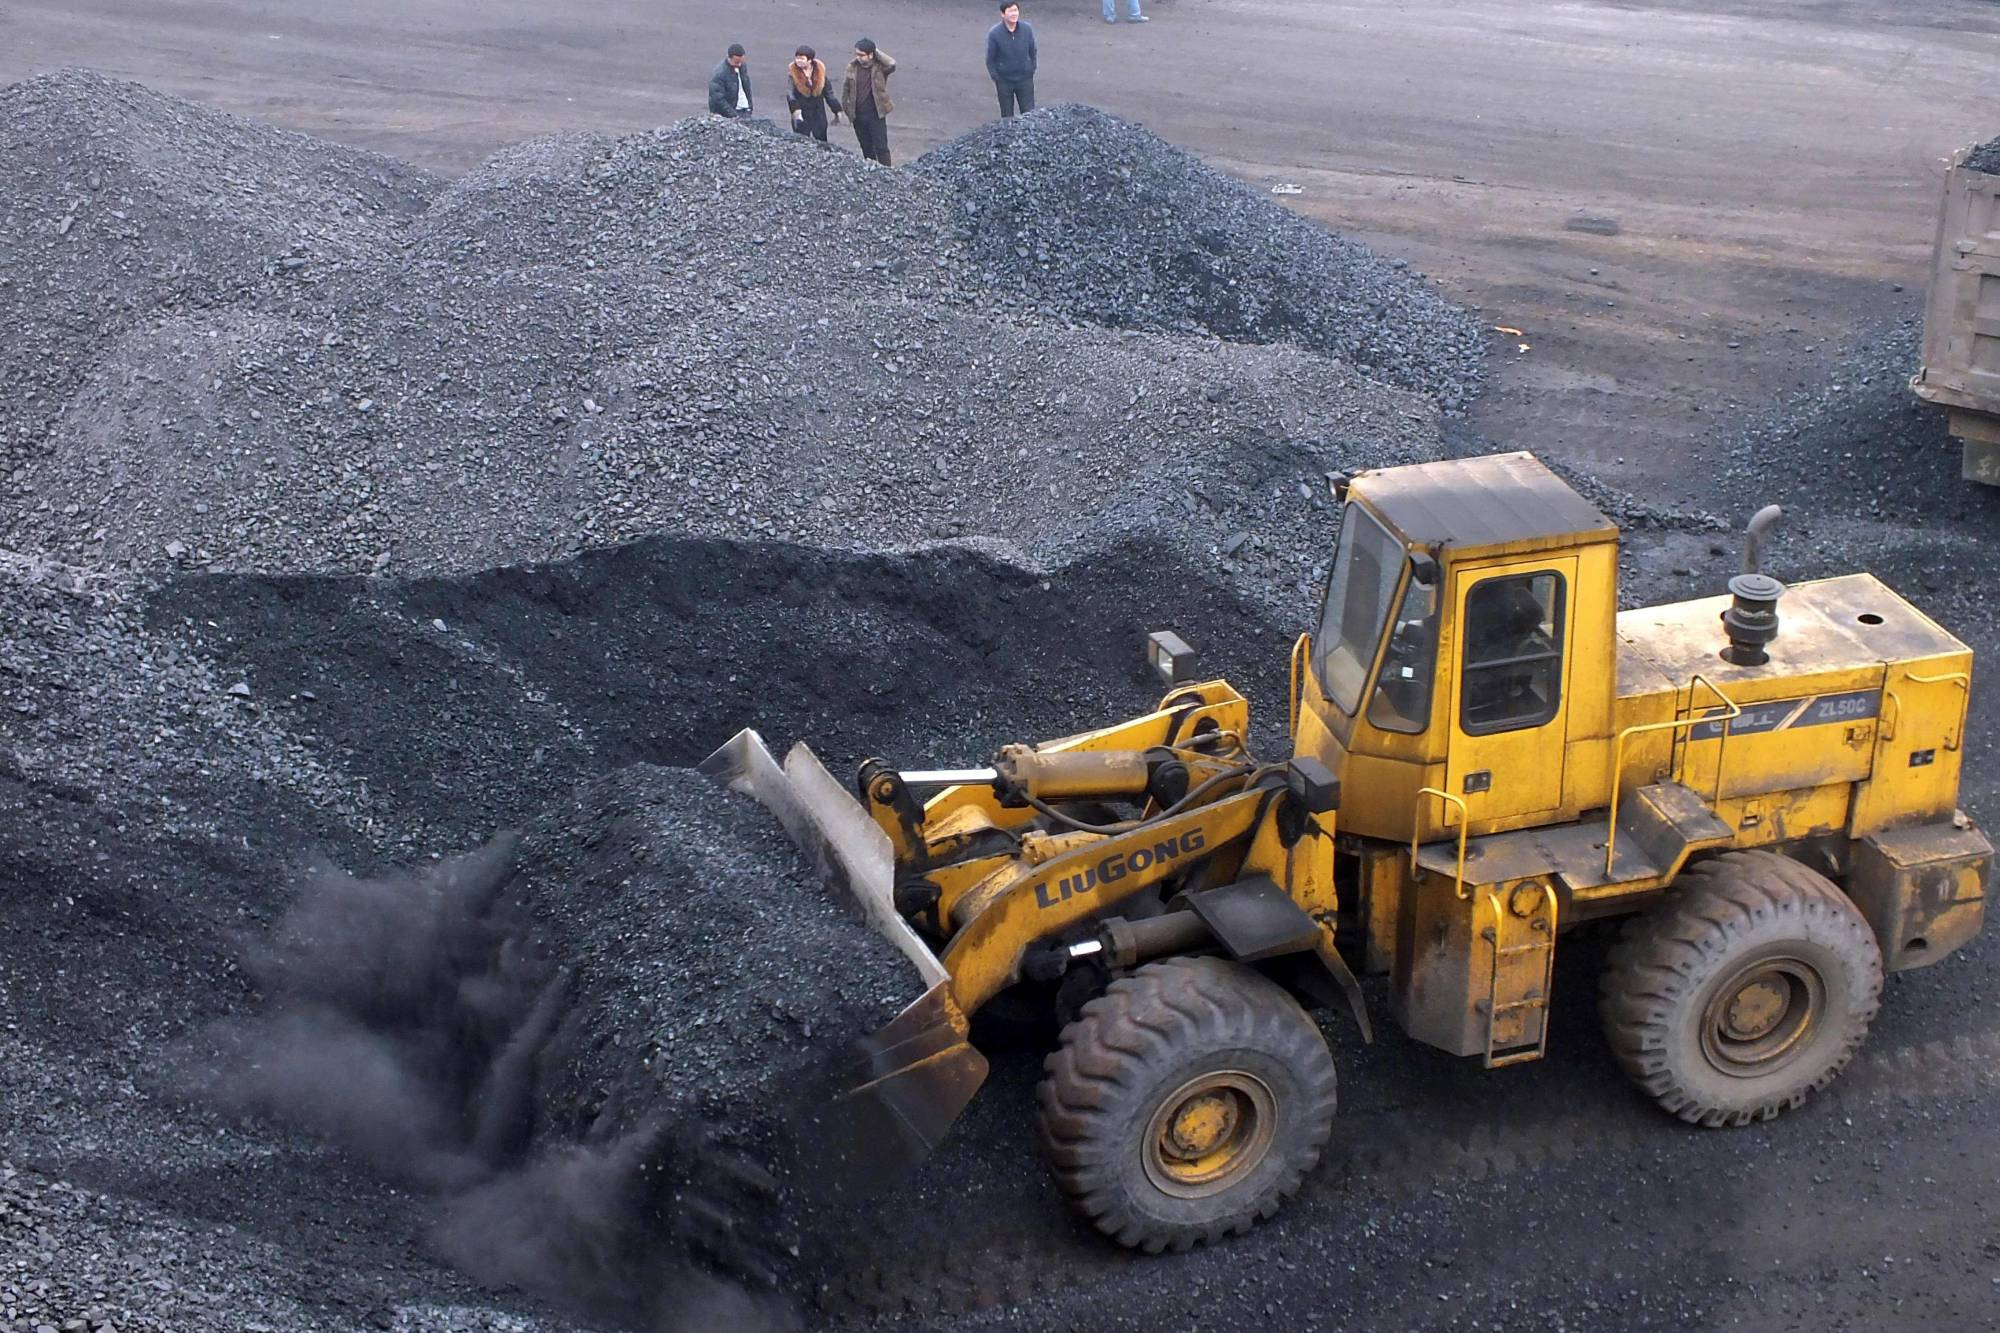 Coal is loaded onto a truck at a port in Yichang, China, in 2014. | AFP-JIJI